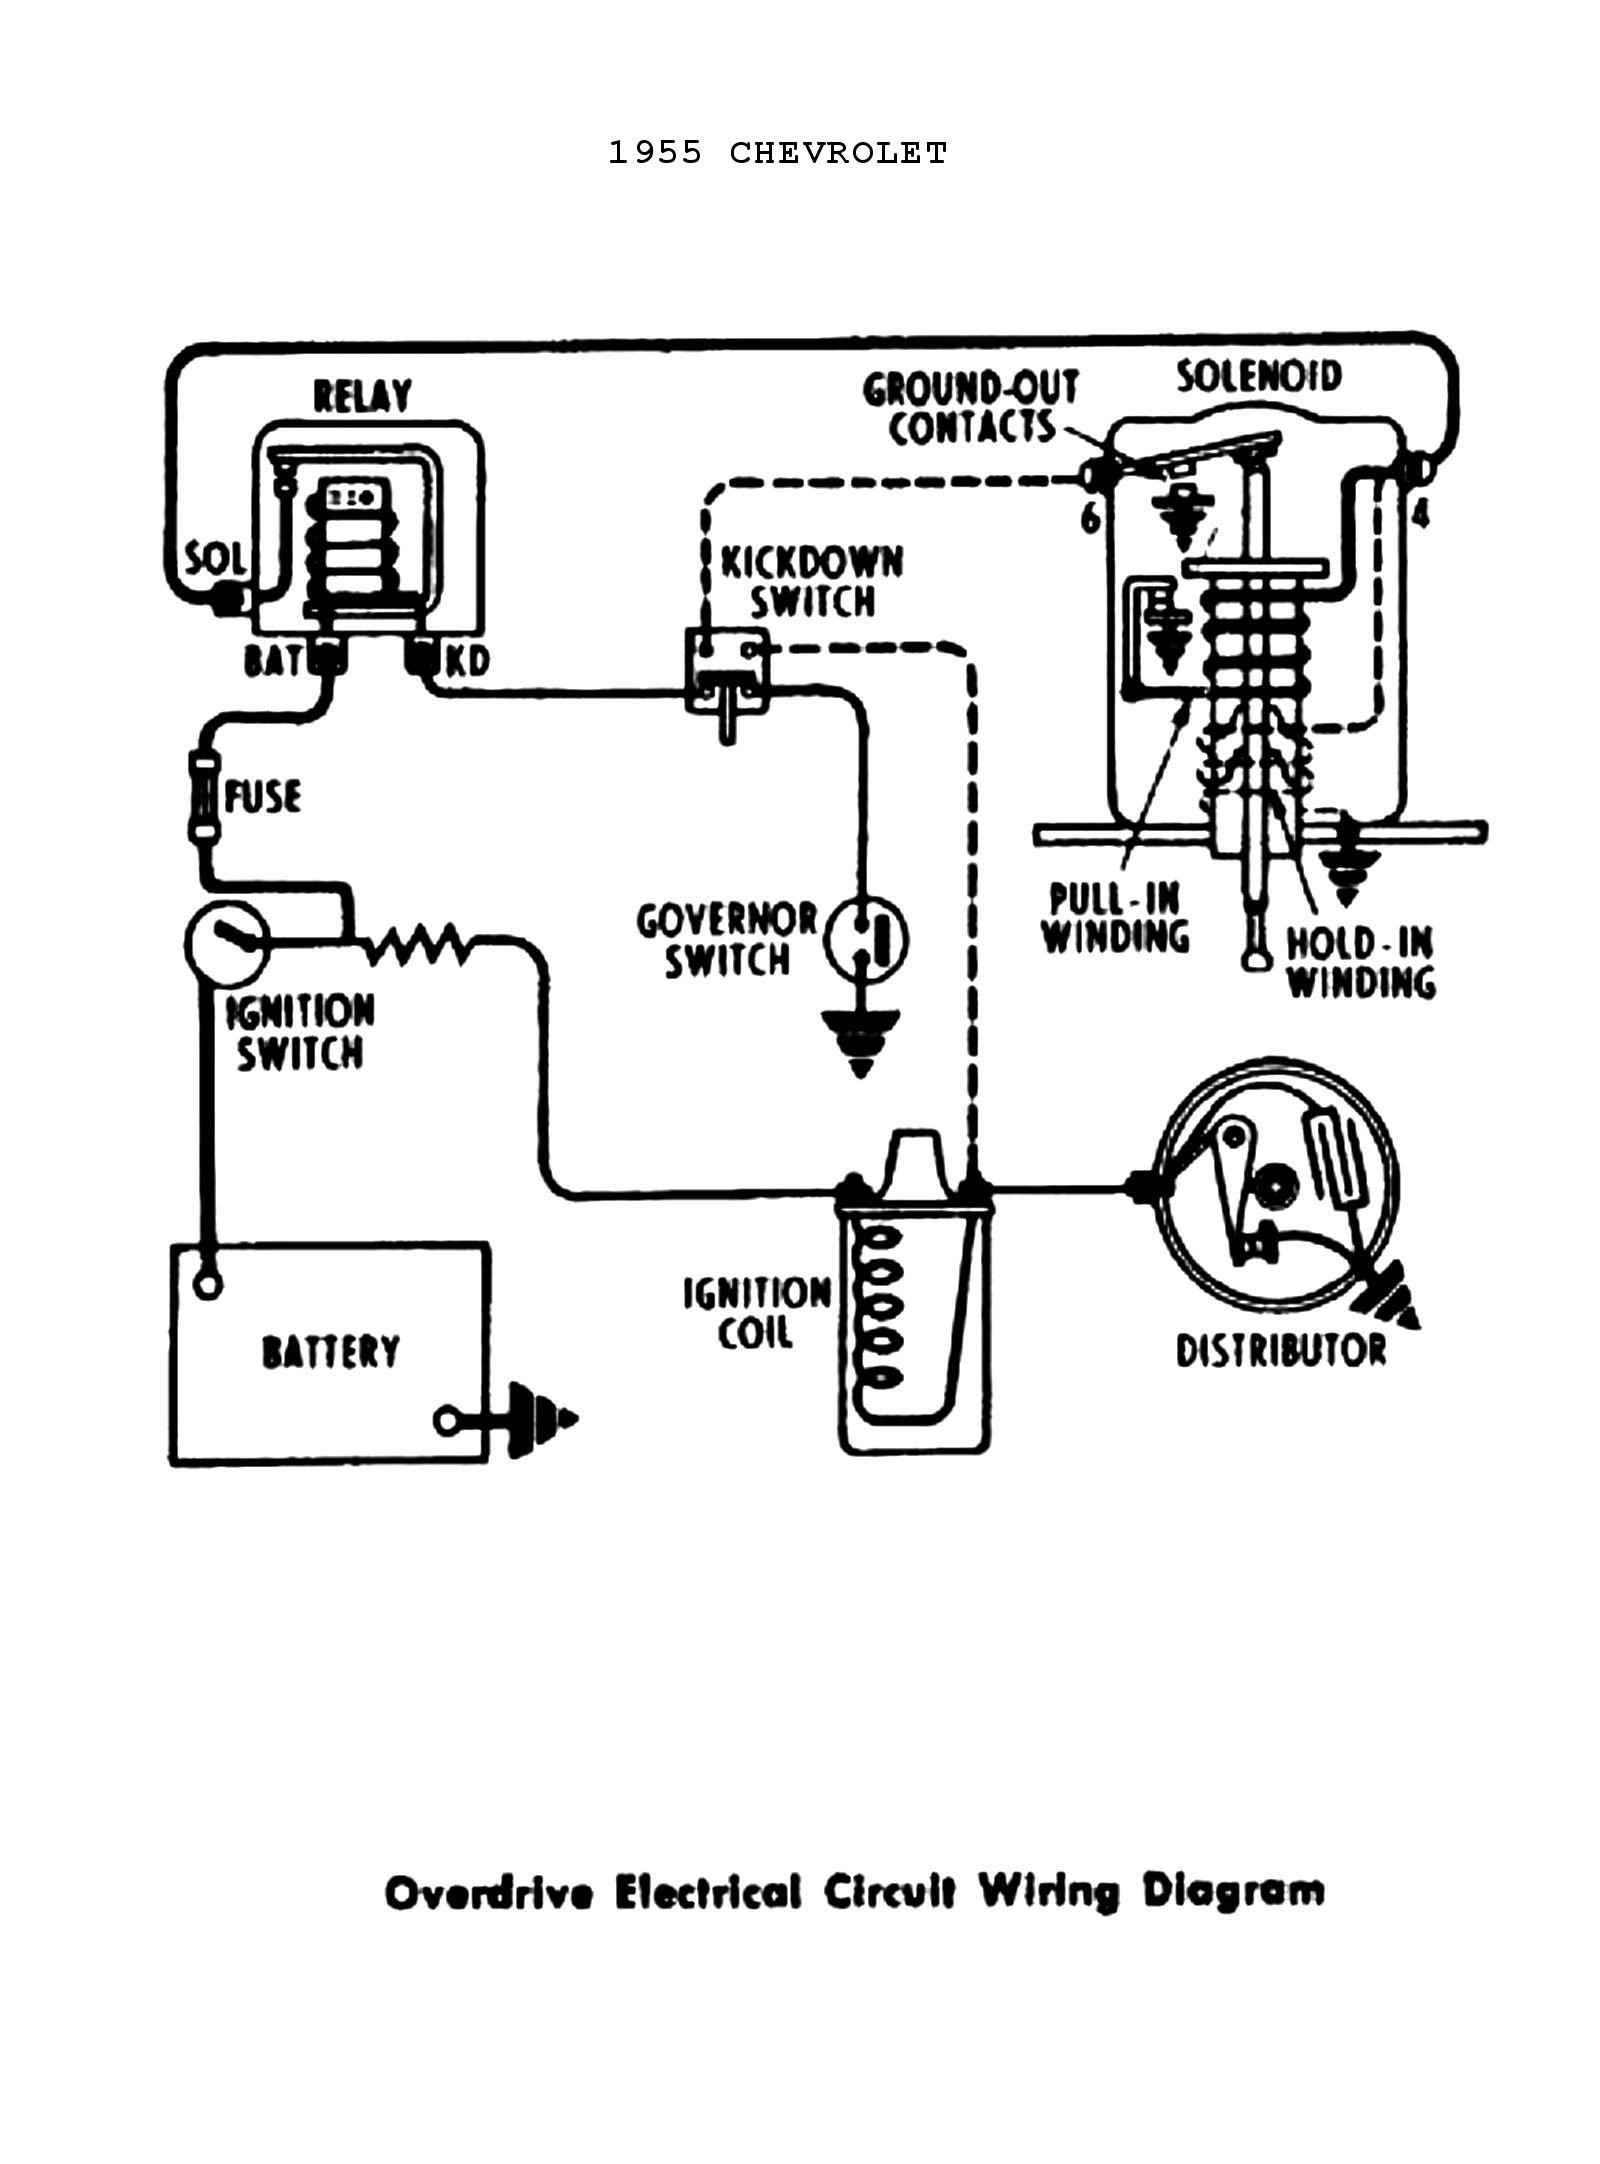 Chevy Power Steering Pump Diagram 1955 Chevy Fuel Tank Diagram 1955 Chevy Ignition Wiring Diagram Of Chevy Power Steering Pump Diagram